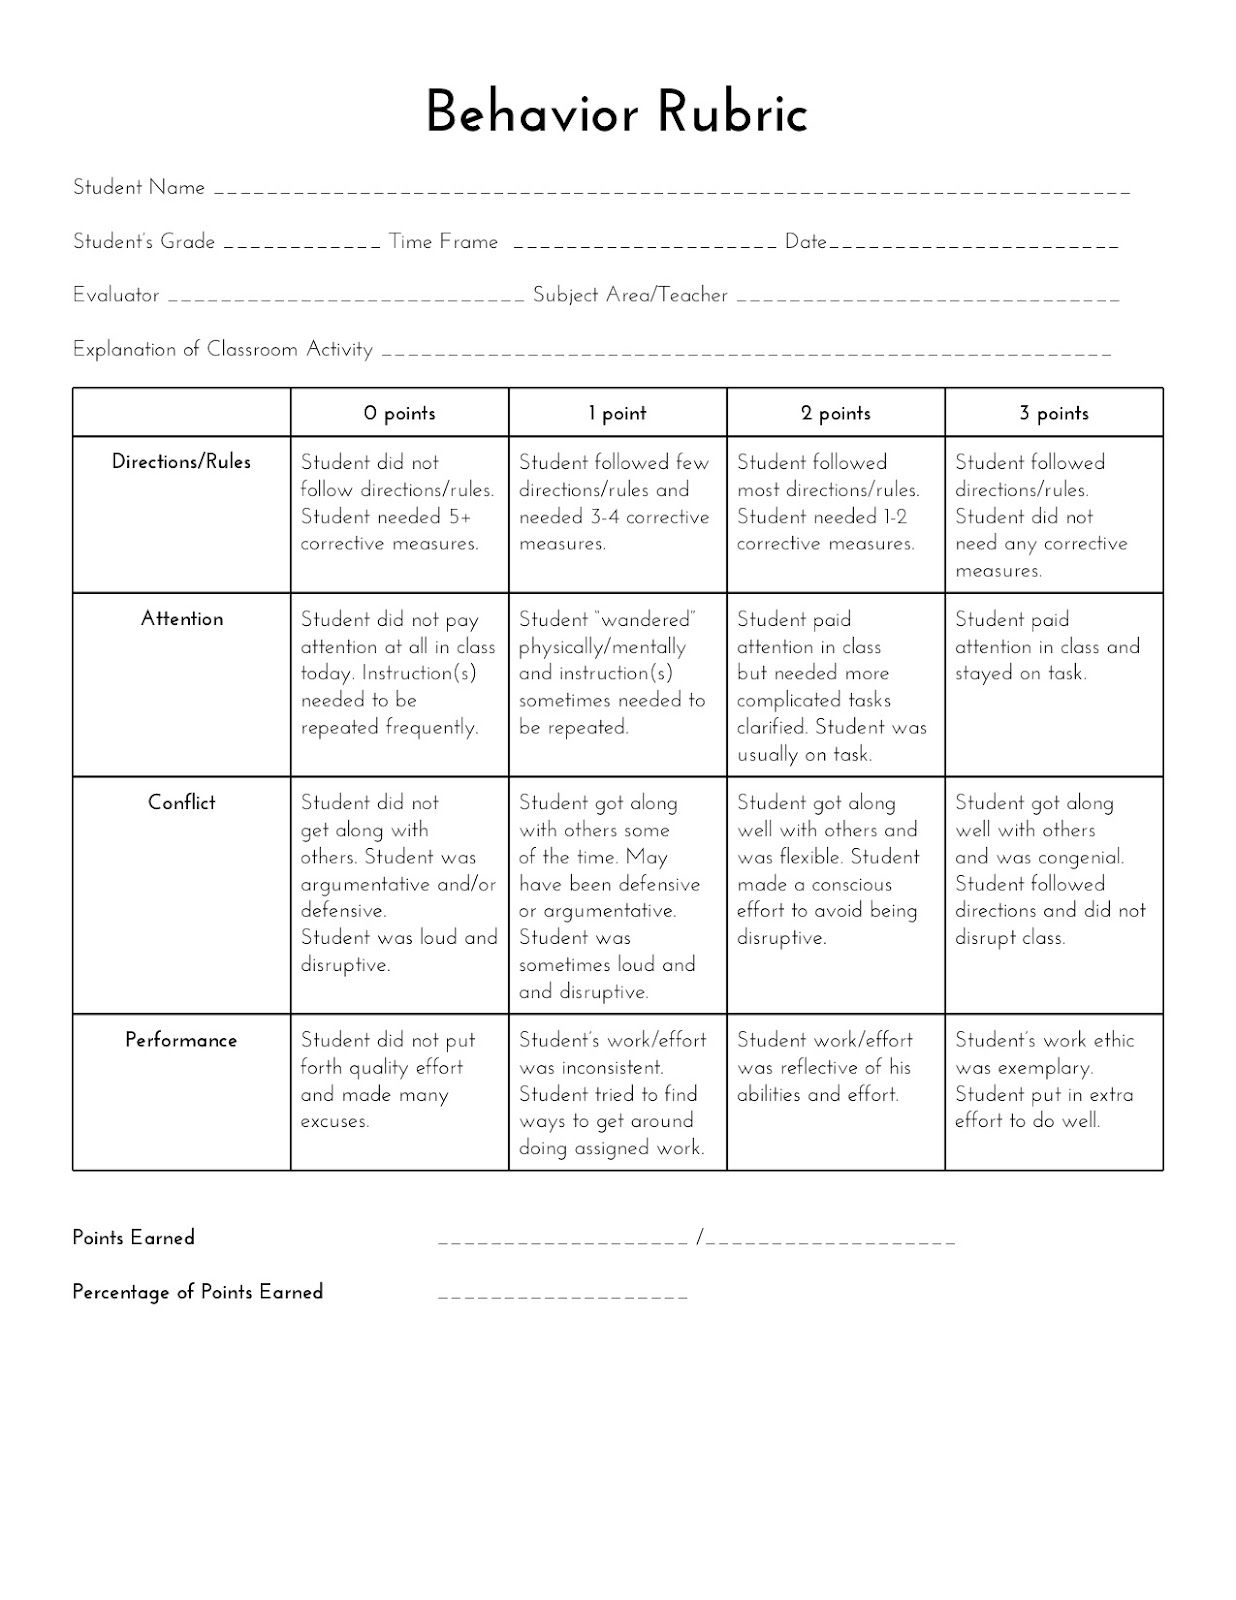 Sped Head Generic Behavior Rubric